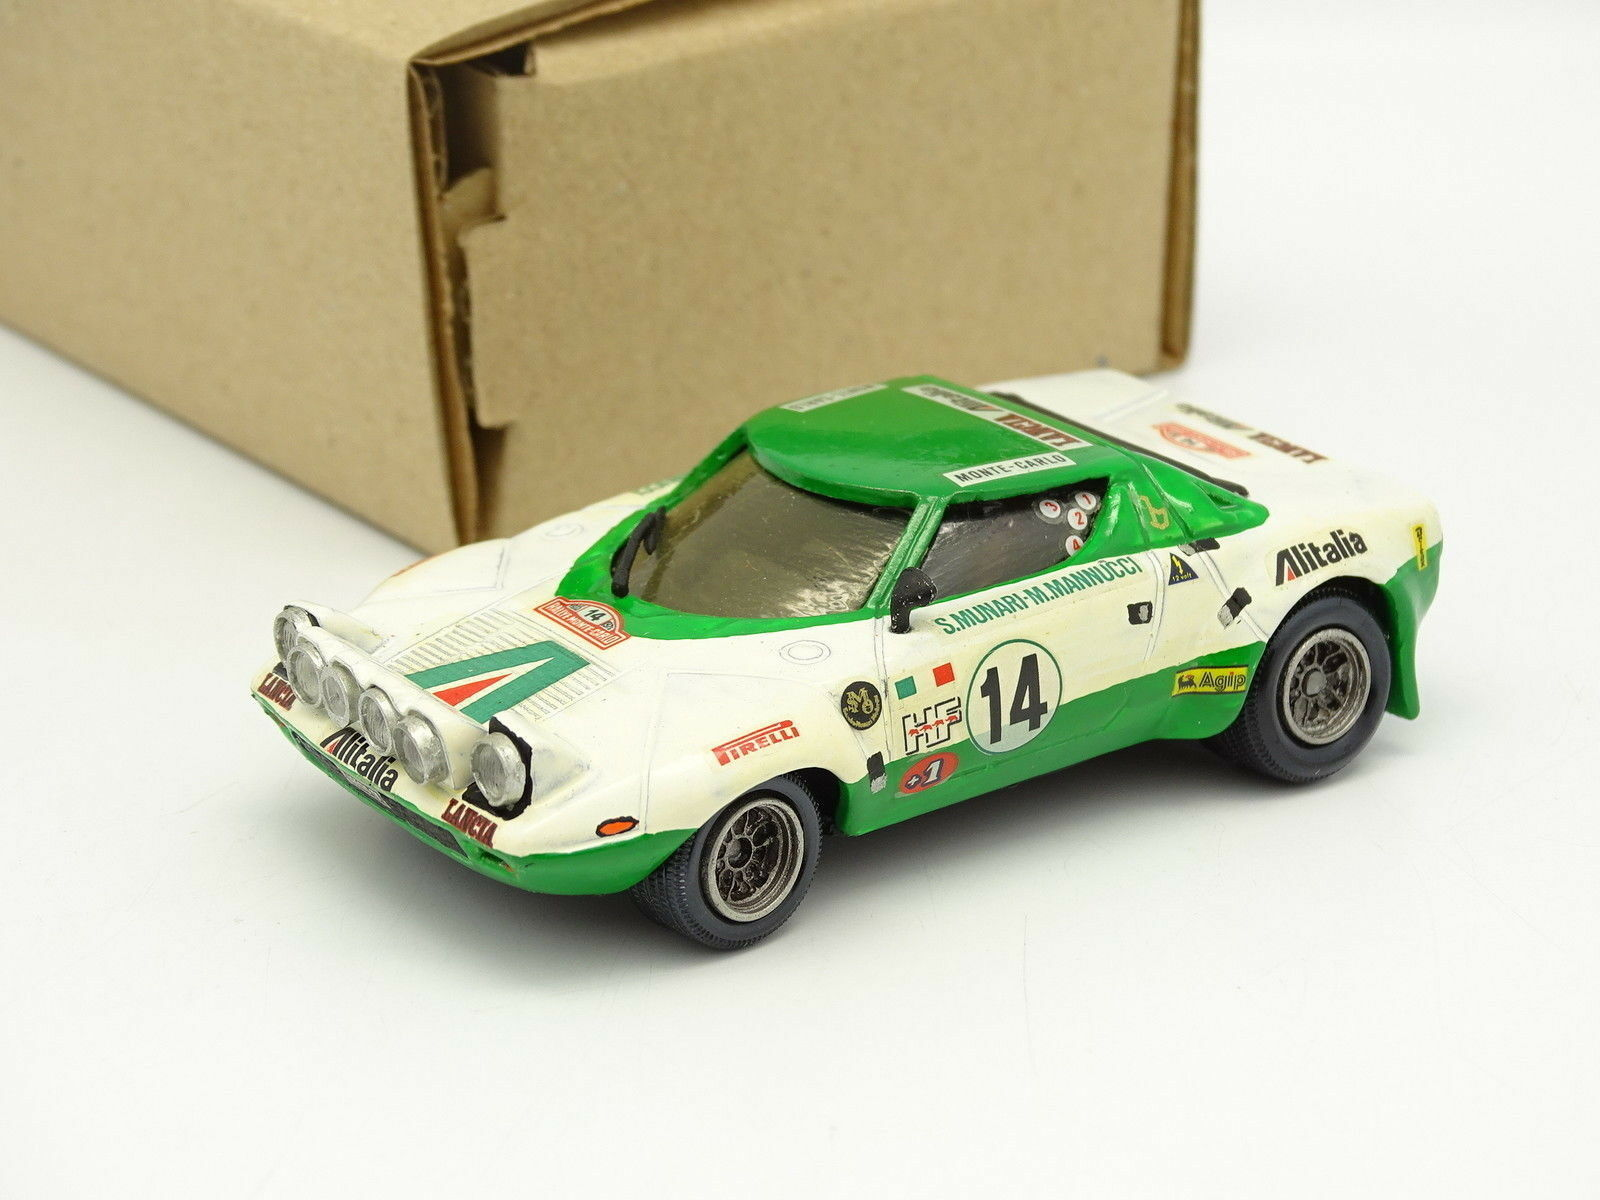 Contimodels Set Built 1 43 Lancia Stratos HF Rally  14 building Carlo 1975